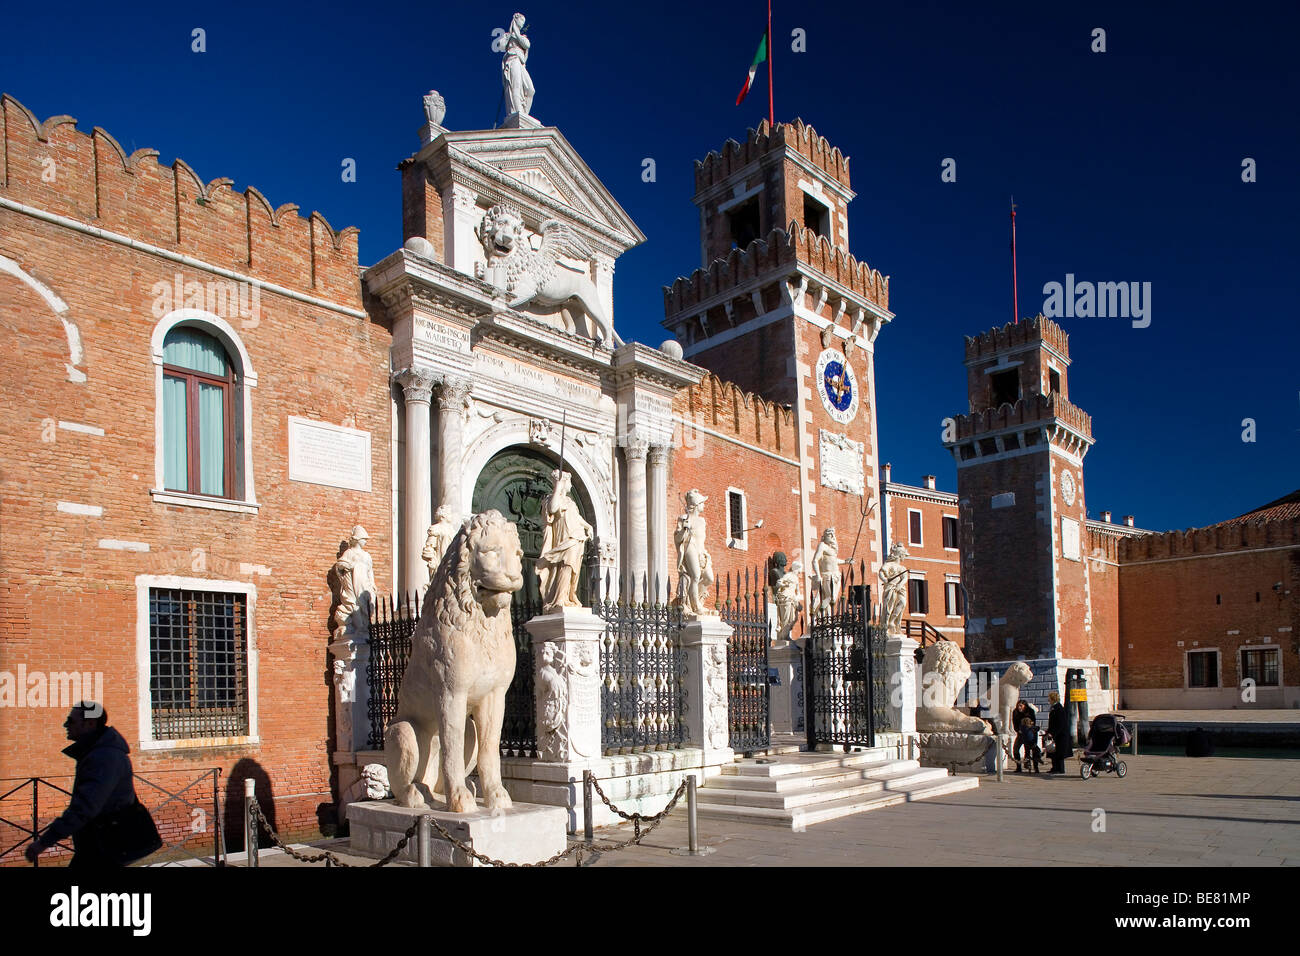 Entrance to the Arsenal, Arsenale di Venezia, former wharf of Venice, in 16th century the largest wharf in the world. - Stock Image